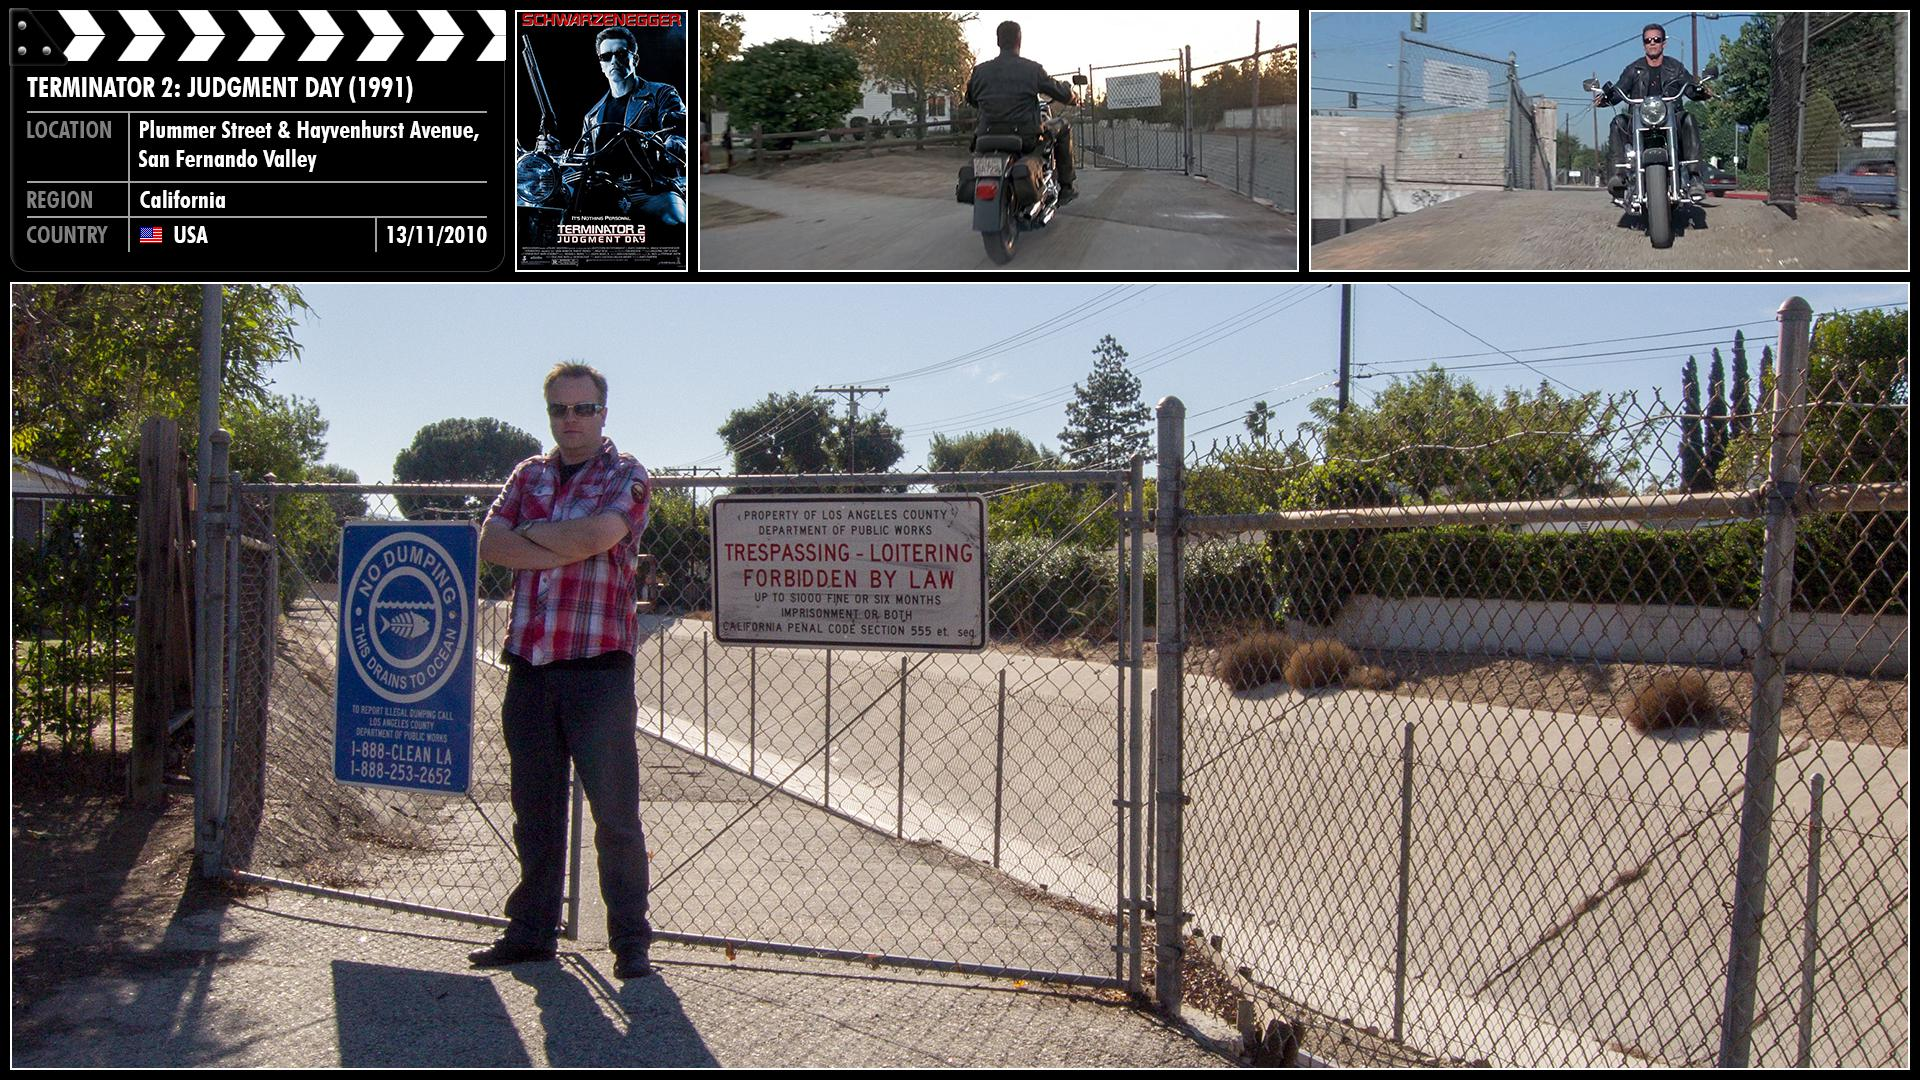 Filming location photo for Terminator 2: Judgment Day (1991) 1 of 2